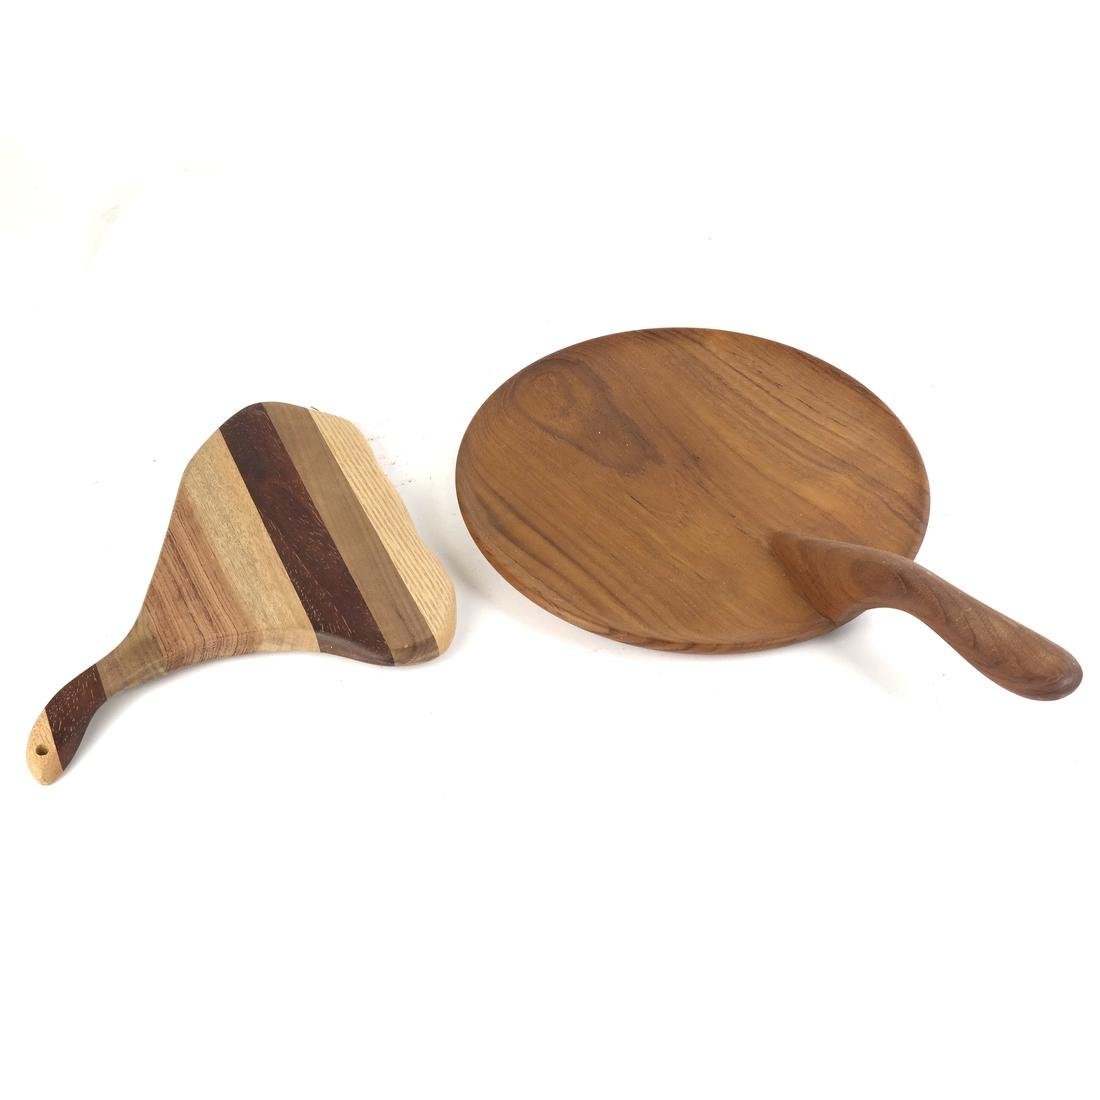 Mostly Danish Wood Serving Pieces - 7